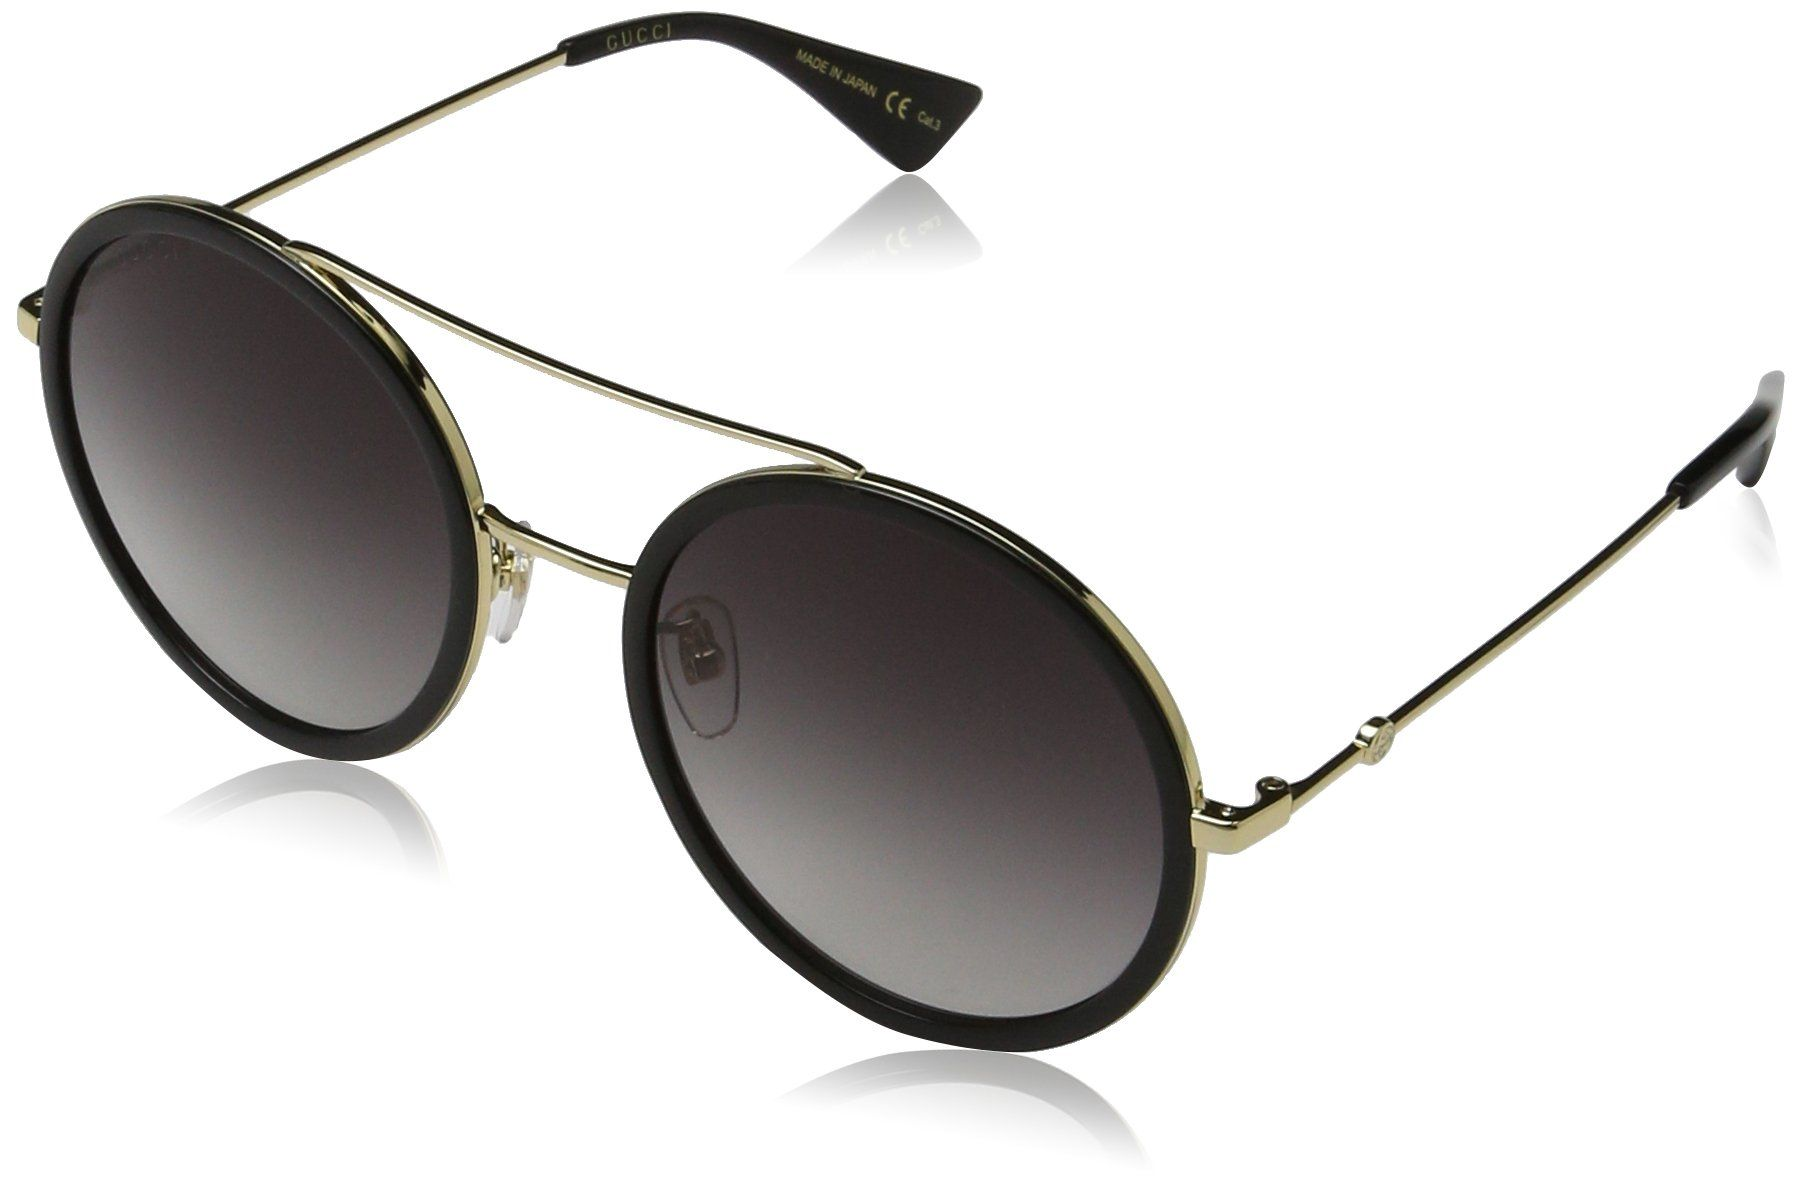 87bc156bbd6 Gucci 0061S 001 Gold 0061S Round Sunglasses Lens Category 3 Size 56mm      You can get additional details at the image link.(It is Amazon affiliate  link)   ...